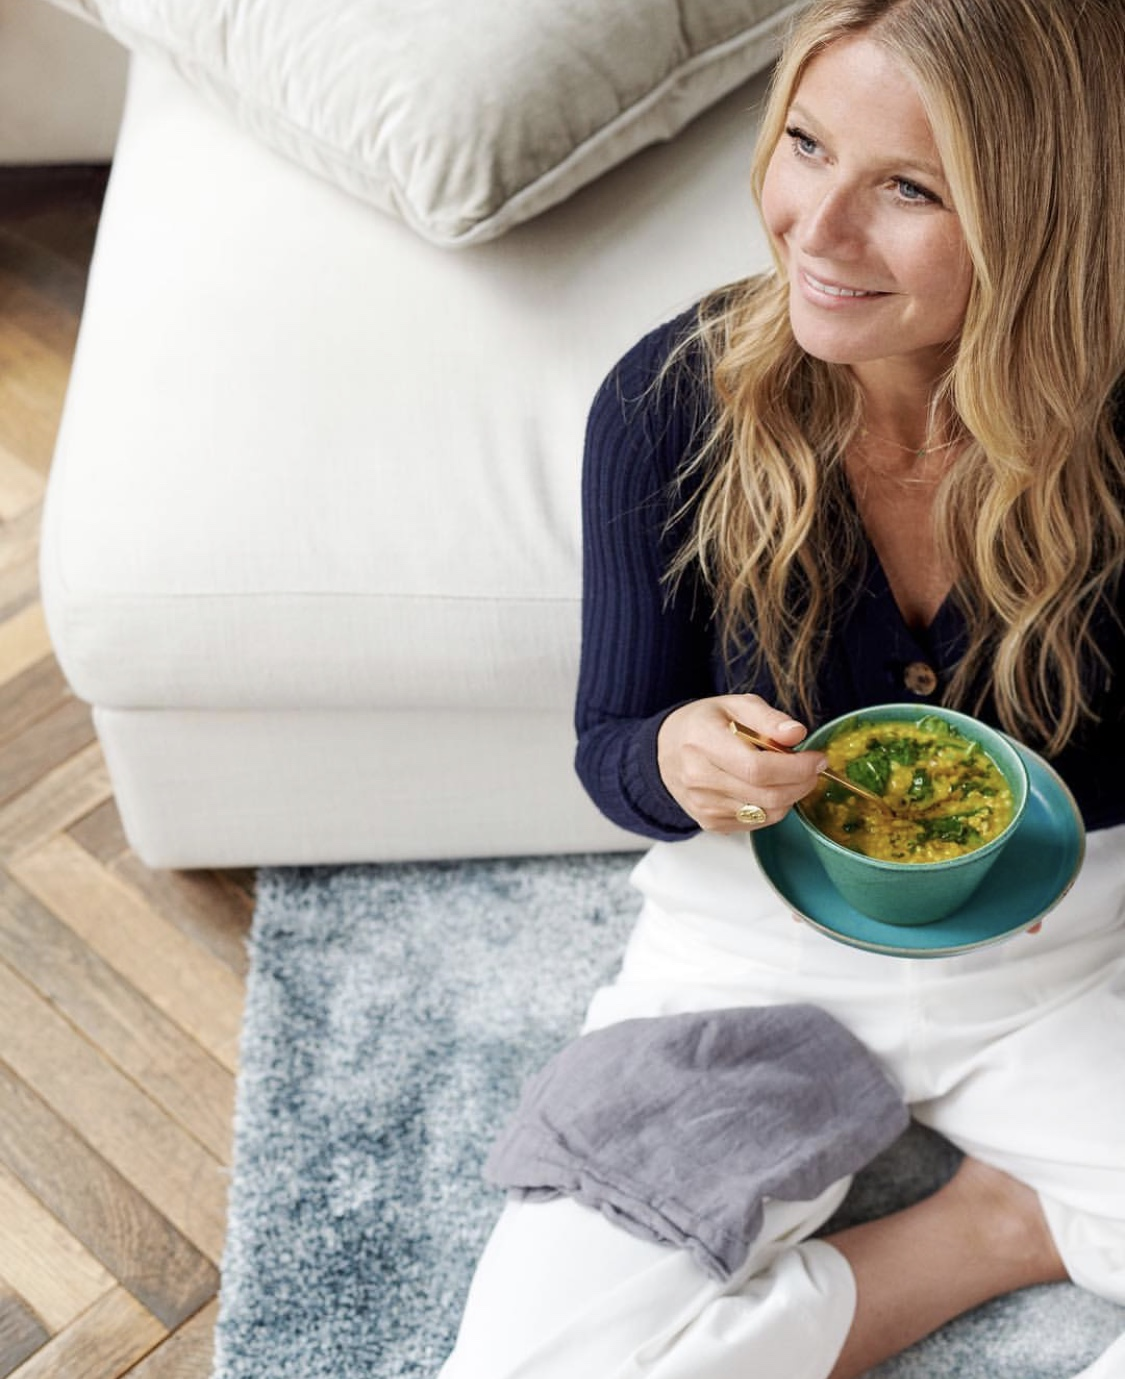 795d8a79c1b5c The mothership of all health and wellness blogs, we love browsing Gwyneth's  informative and innovative blog for up to date trends, news and tips on how  live ...